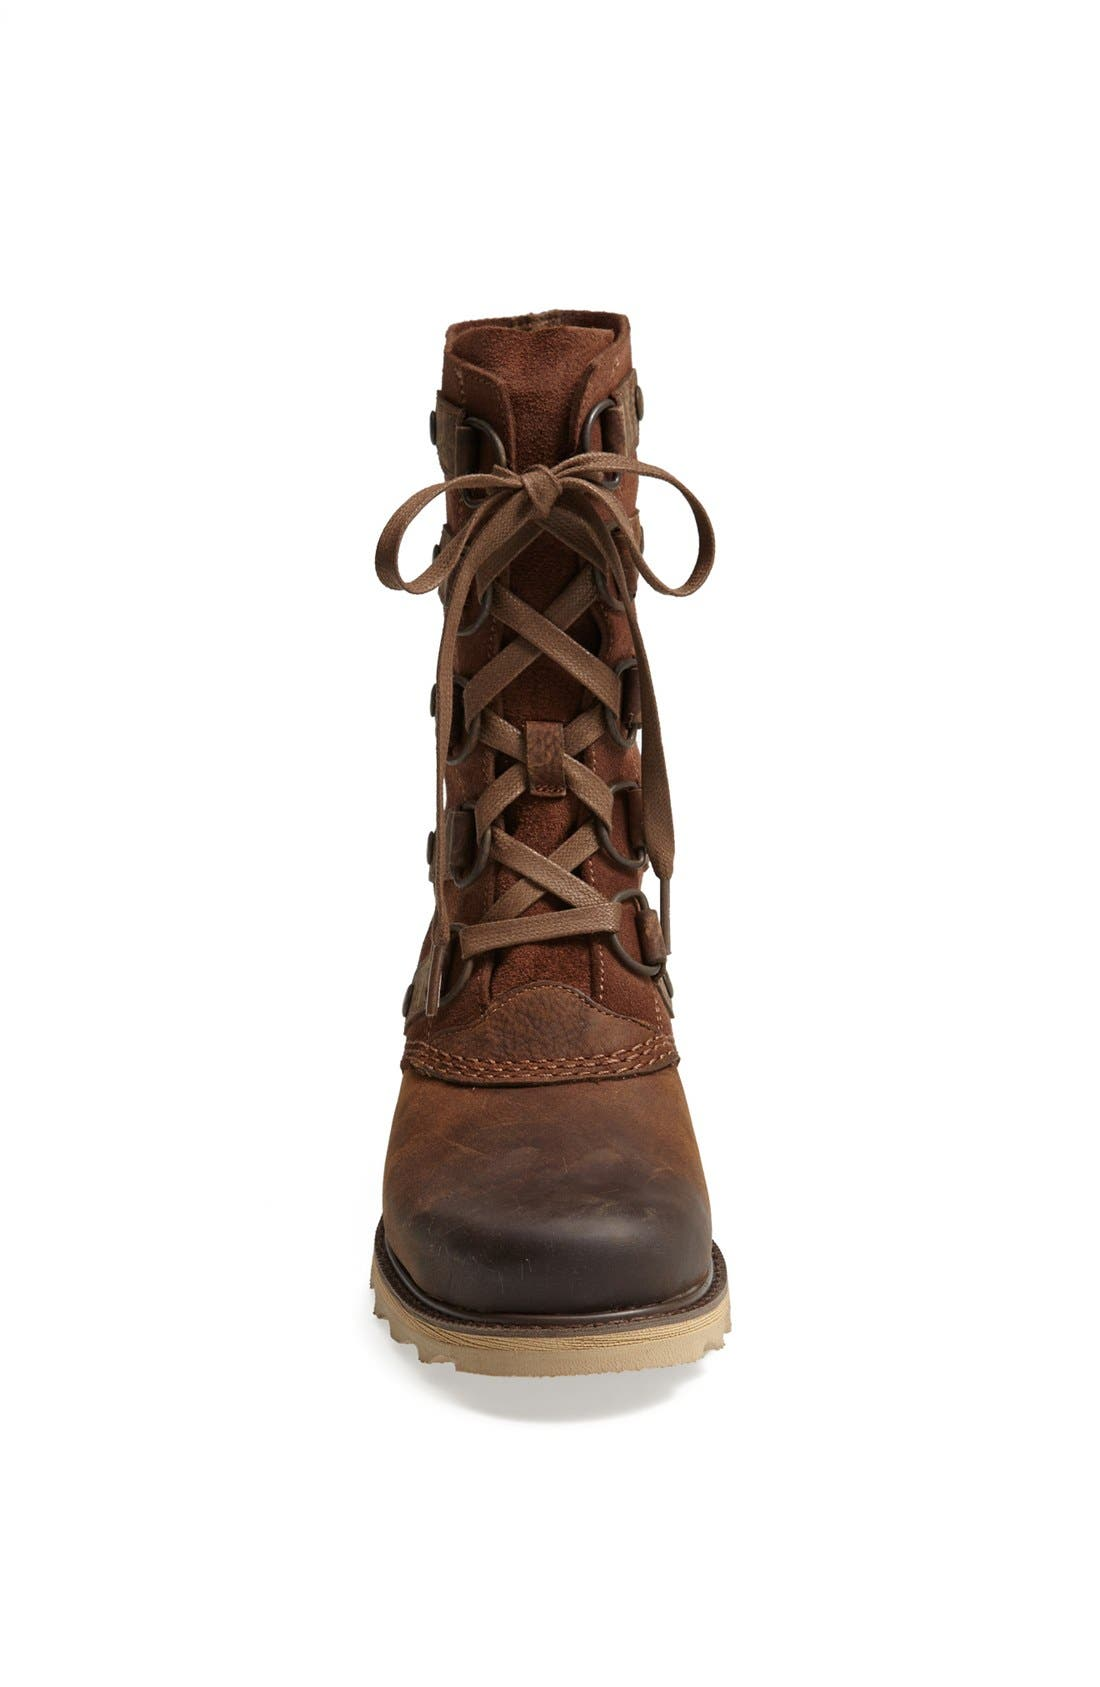 Alternate Image 3  - SOREL 'Scotia' Lace-Up Waterproof Leather Boot (Women)